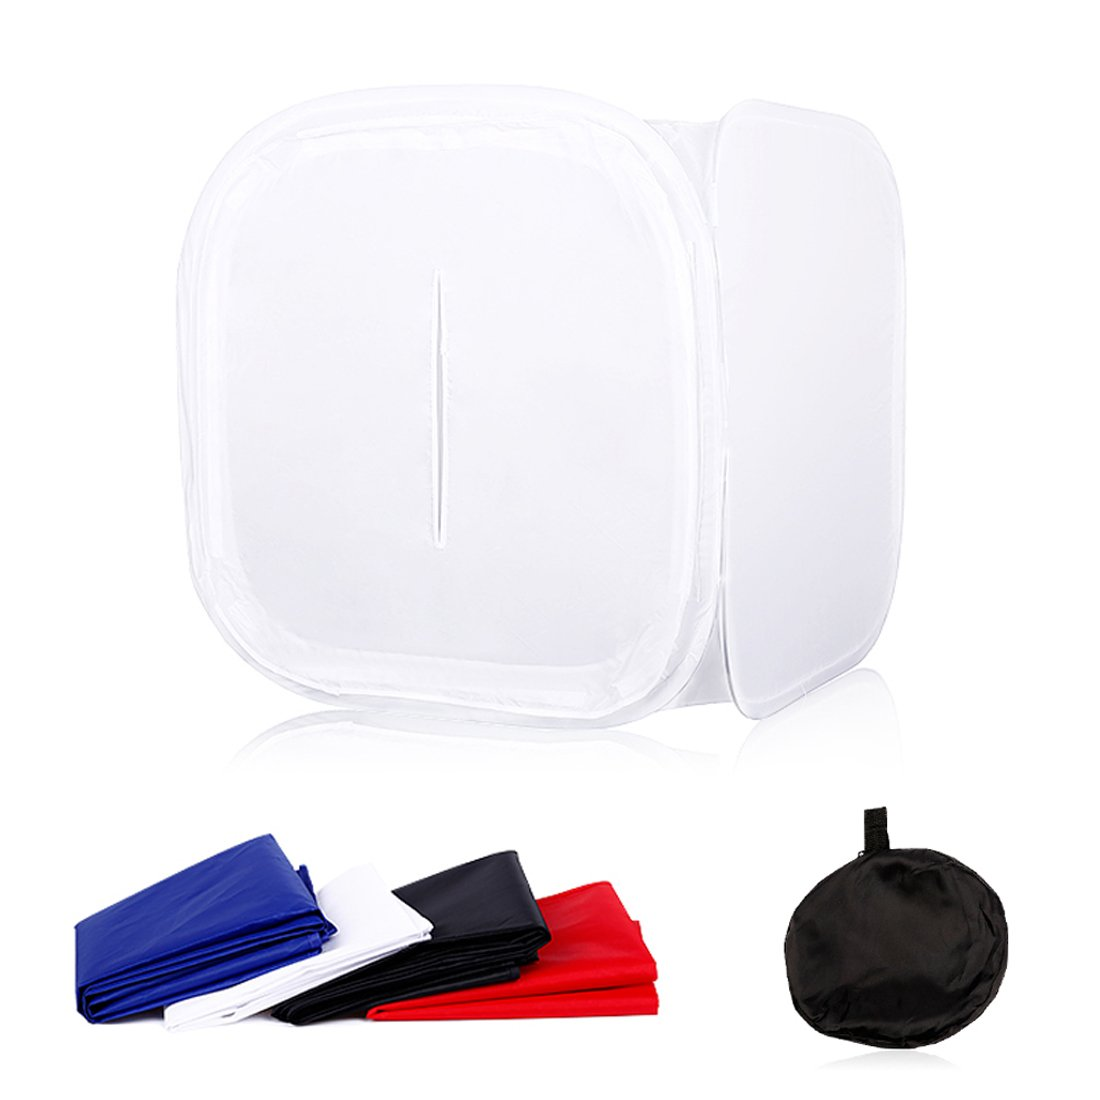 Table Top Photo Studio Mini Softbox 16x16 inch (40x40cm) Foldable Light Shooting Tent Cube Soft Box for Photography by Konseen